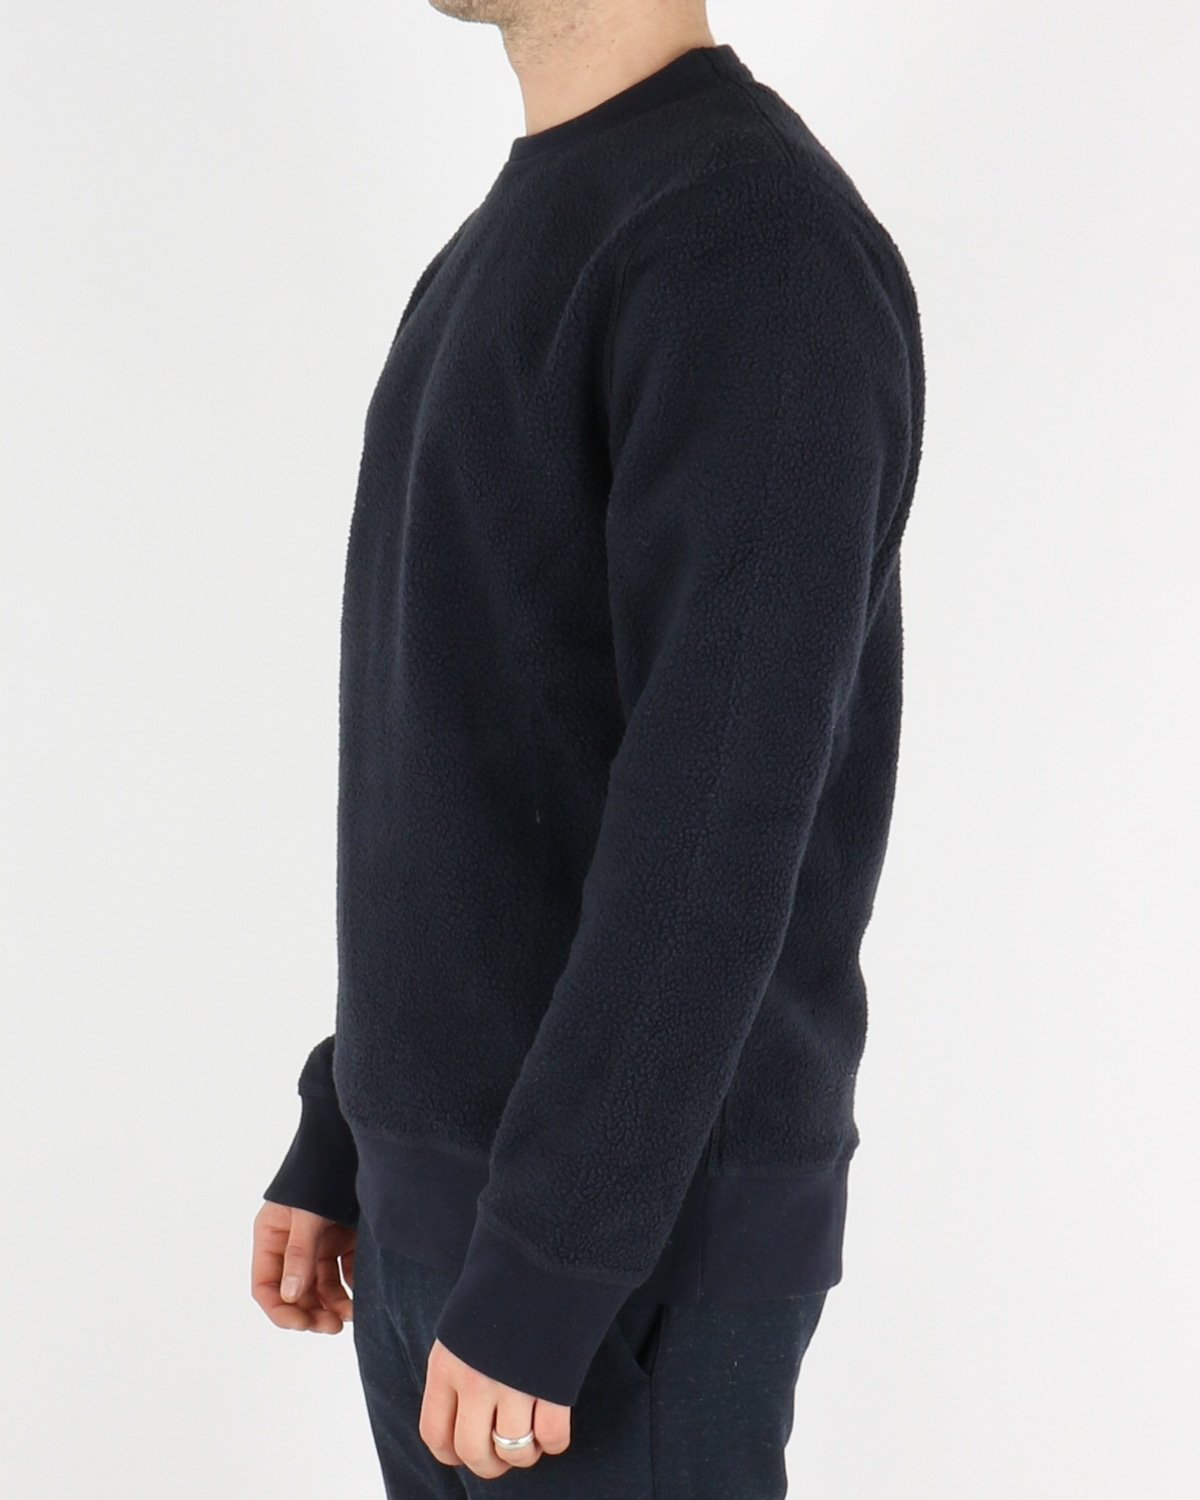 samsoe samsoe_anker crew neck_night sky_3_4